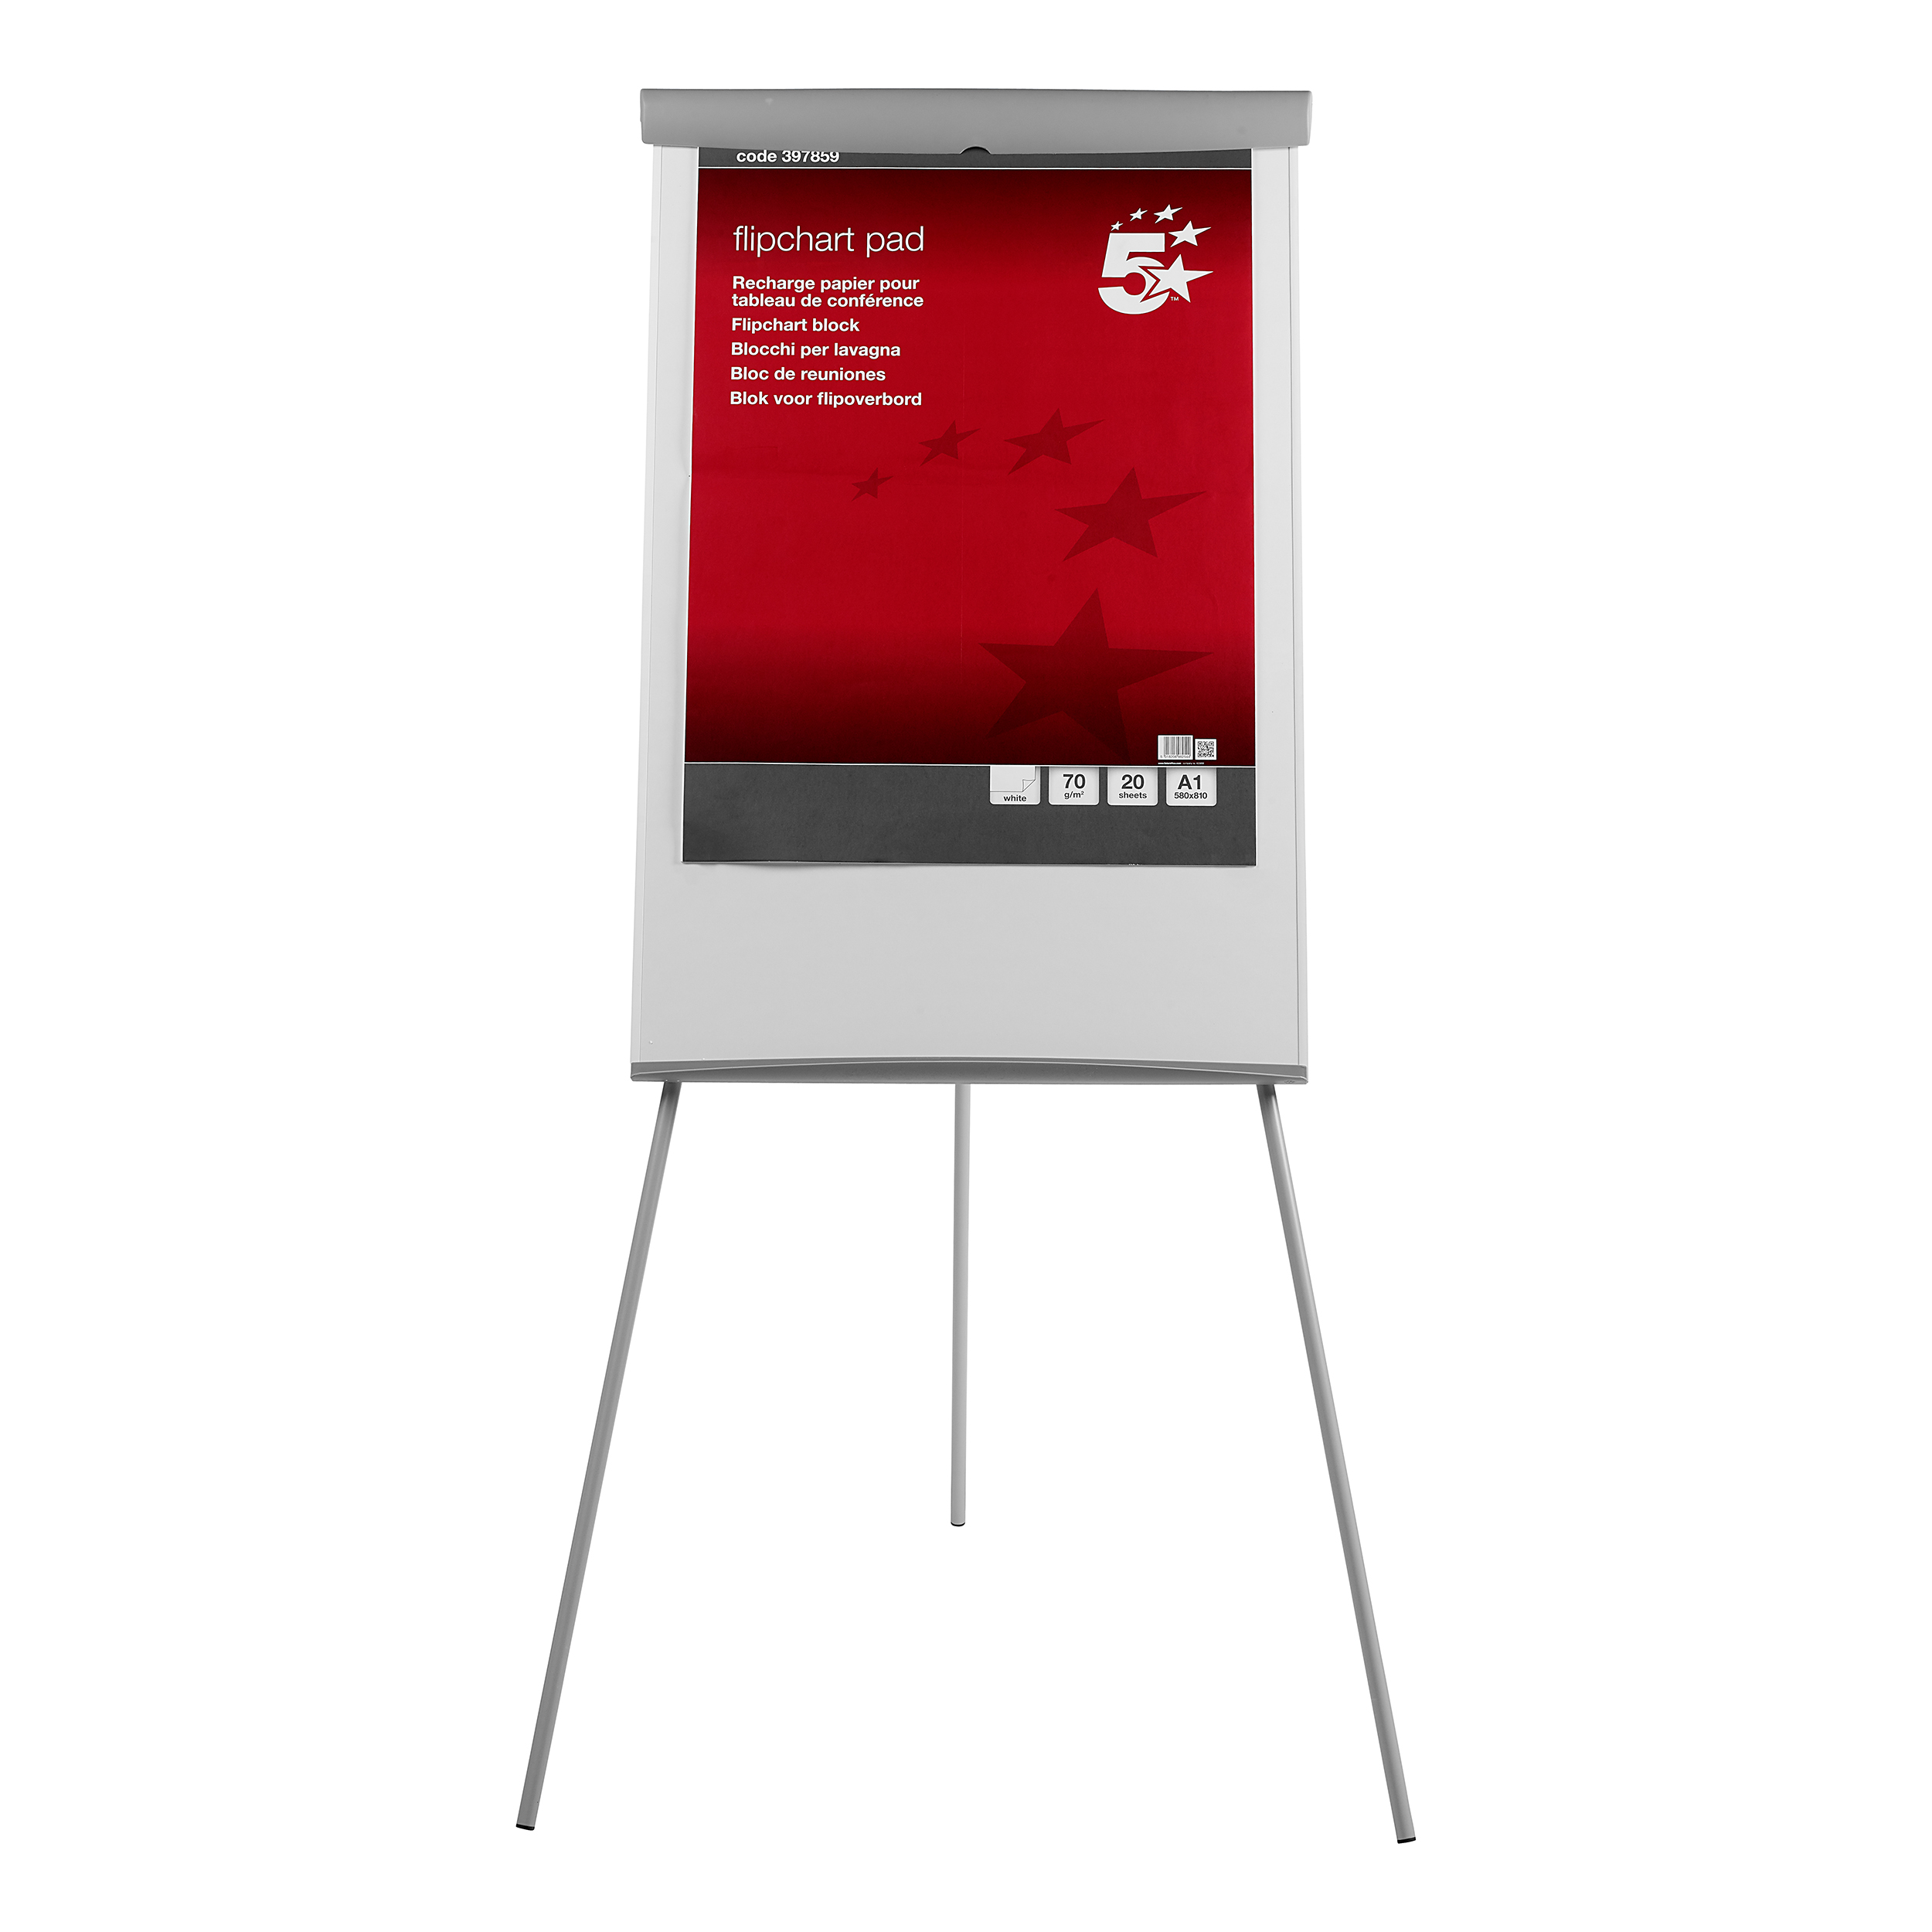 Image for 5 Star Office Flipchart Easel with W670xH990mm Board W700xD82xH1900mm